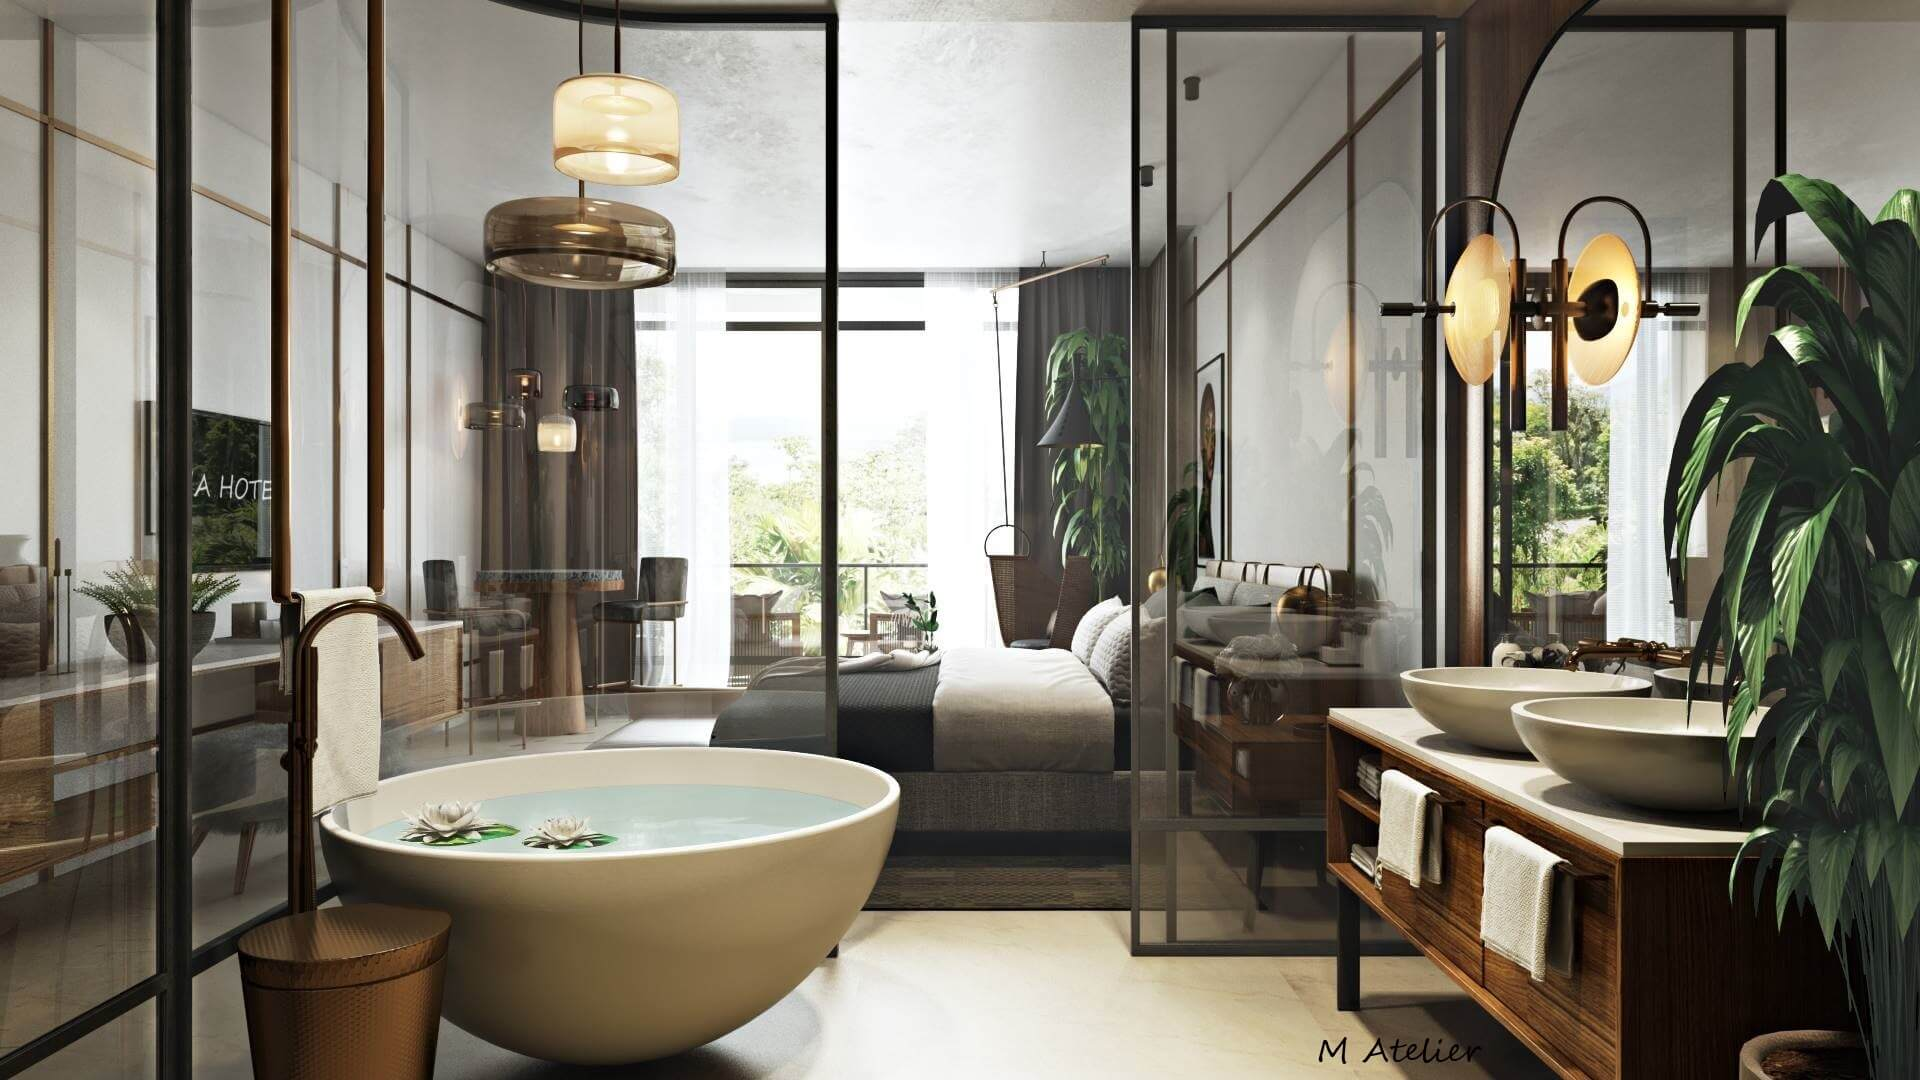 3D Bathroom Visuals for Email Marketing Campaign